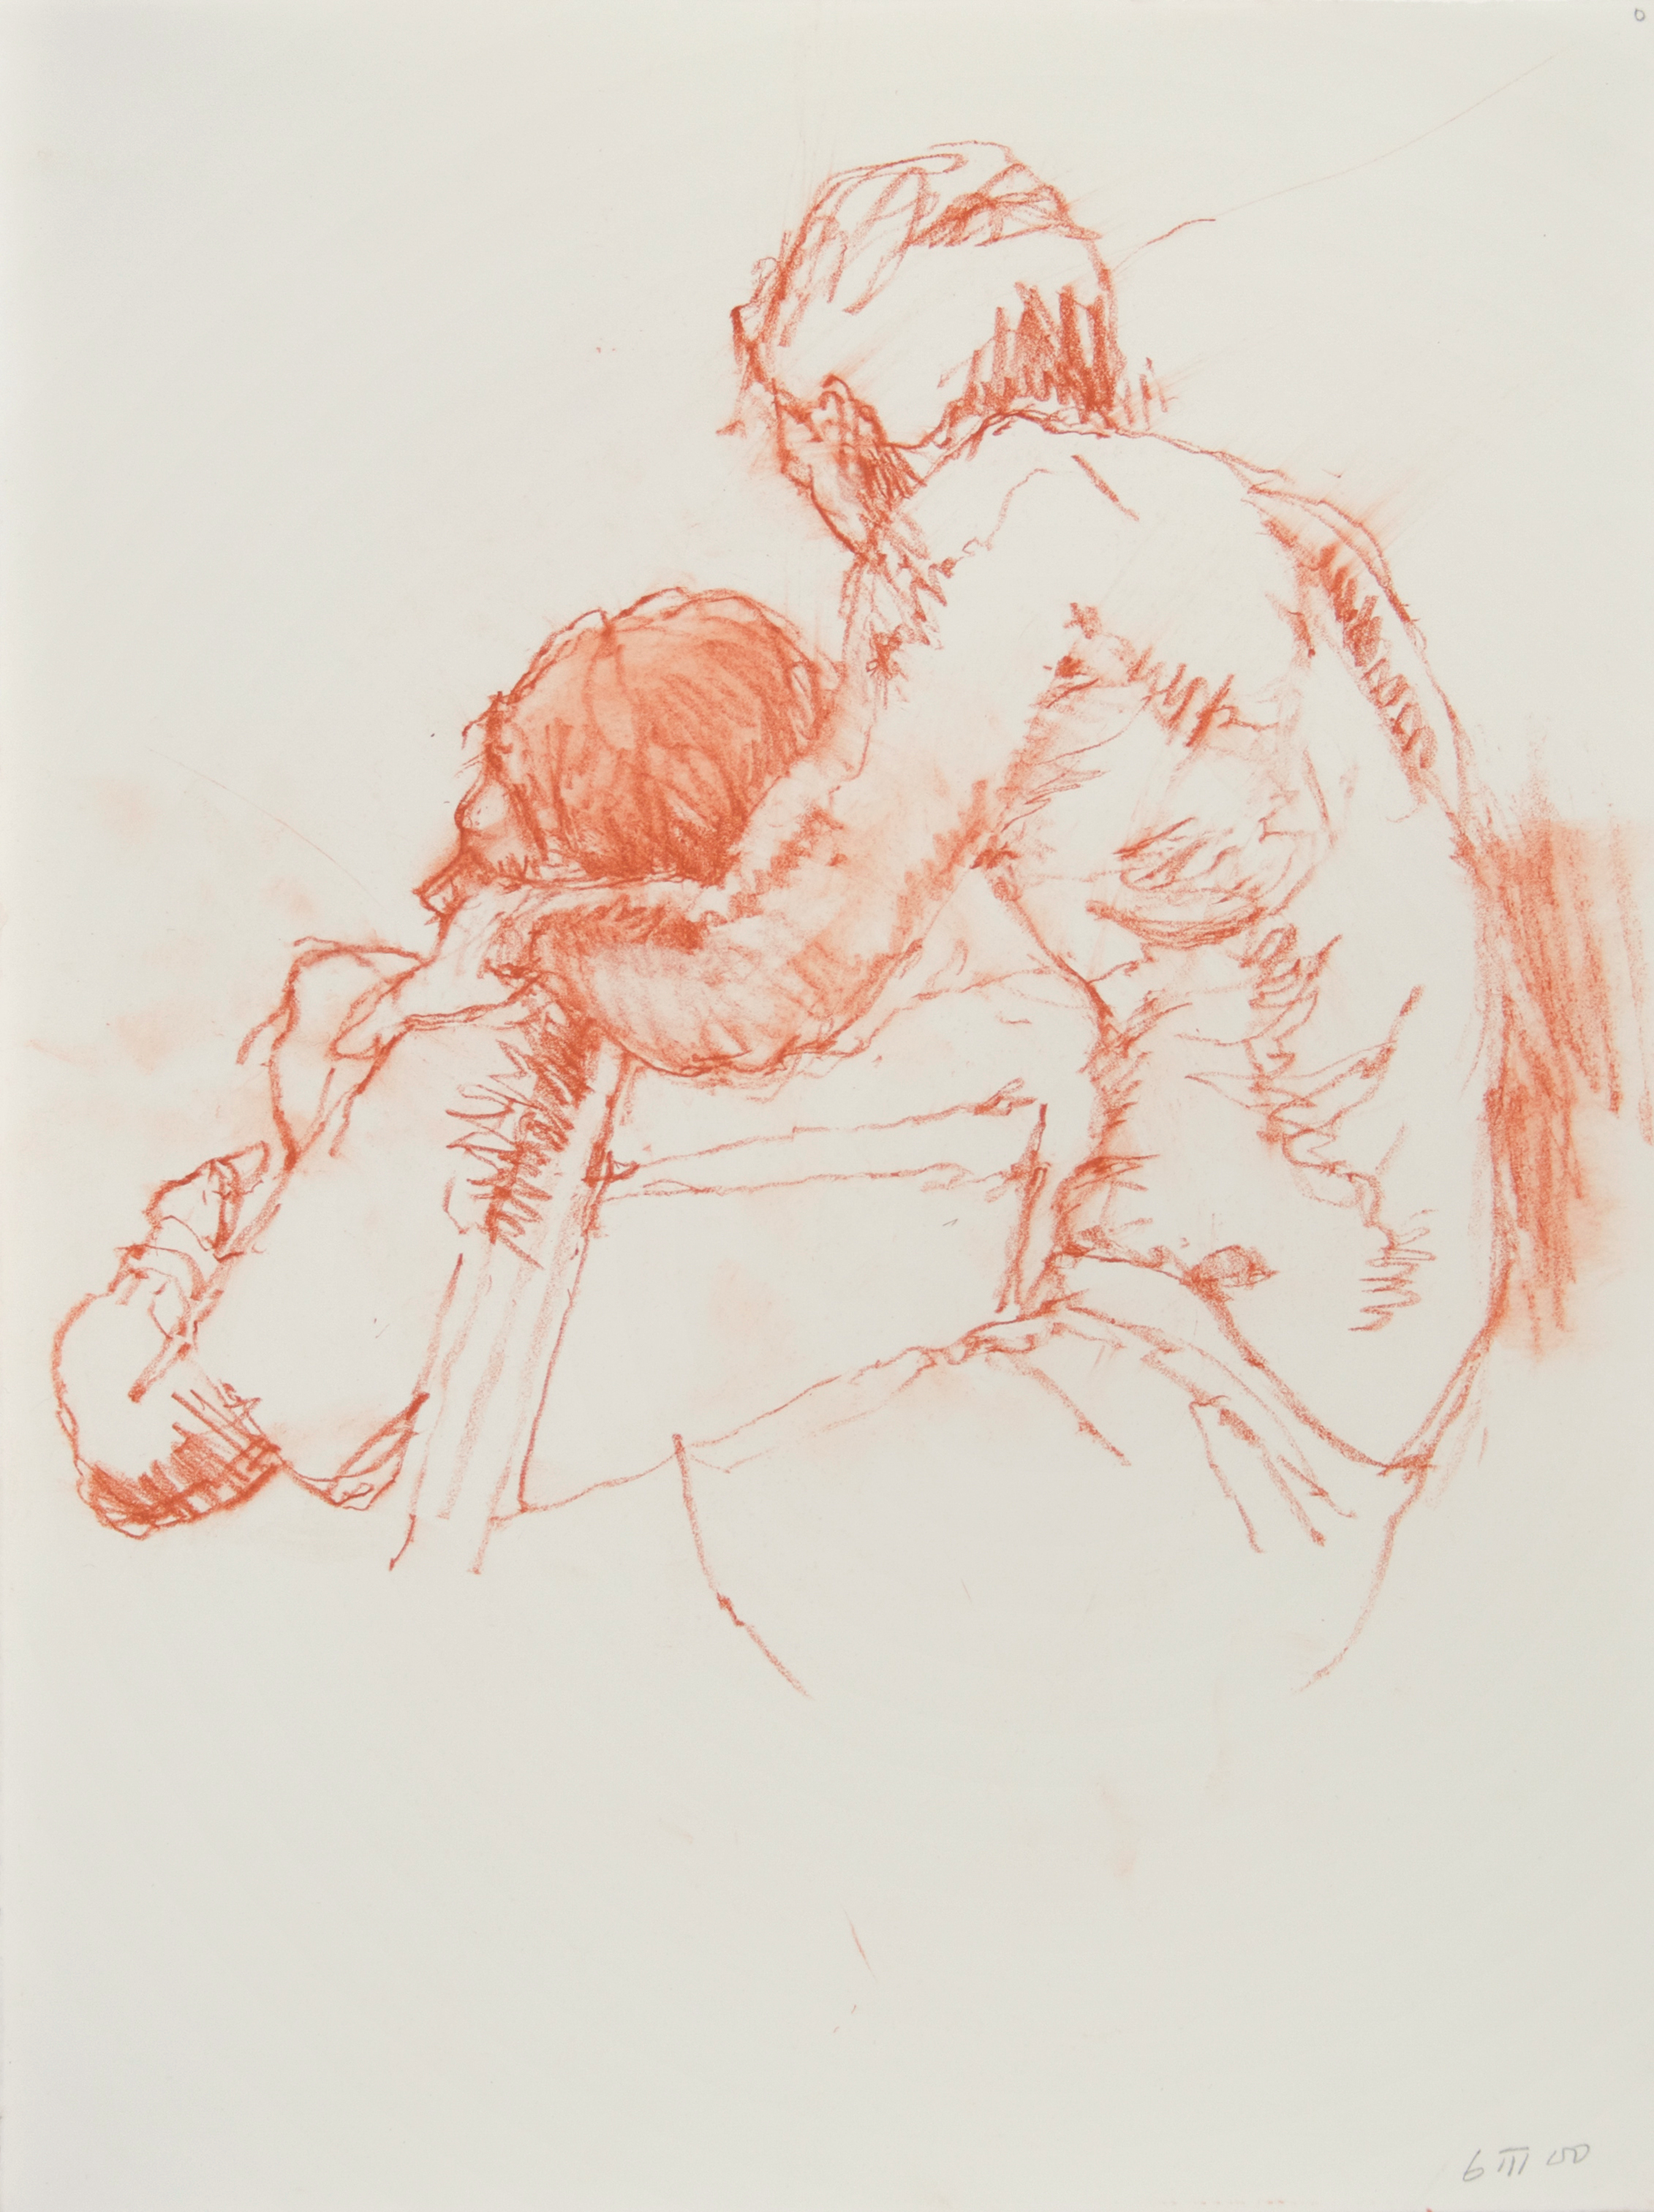 2000_Seated_Couple_with_Chair_red_conte_on_paper_15x11in_38x28cm_WPF407.jpg